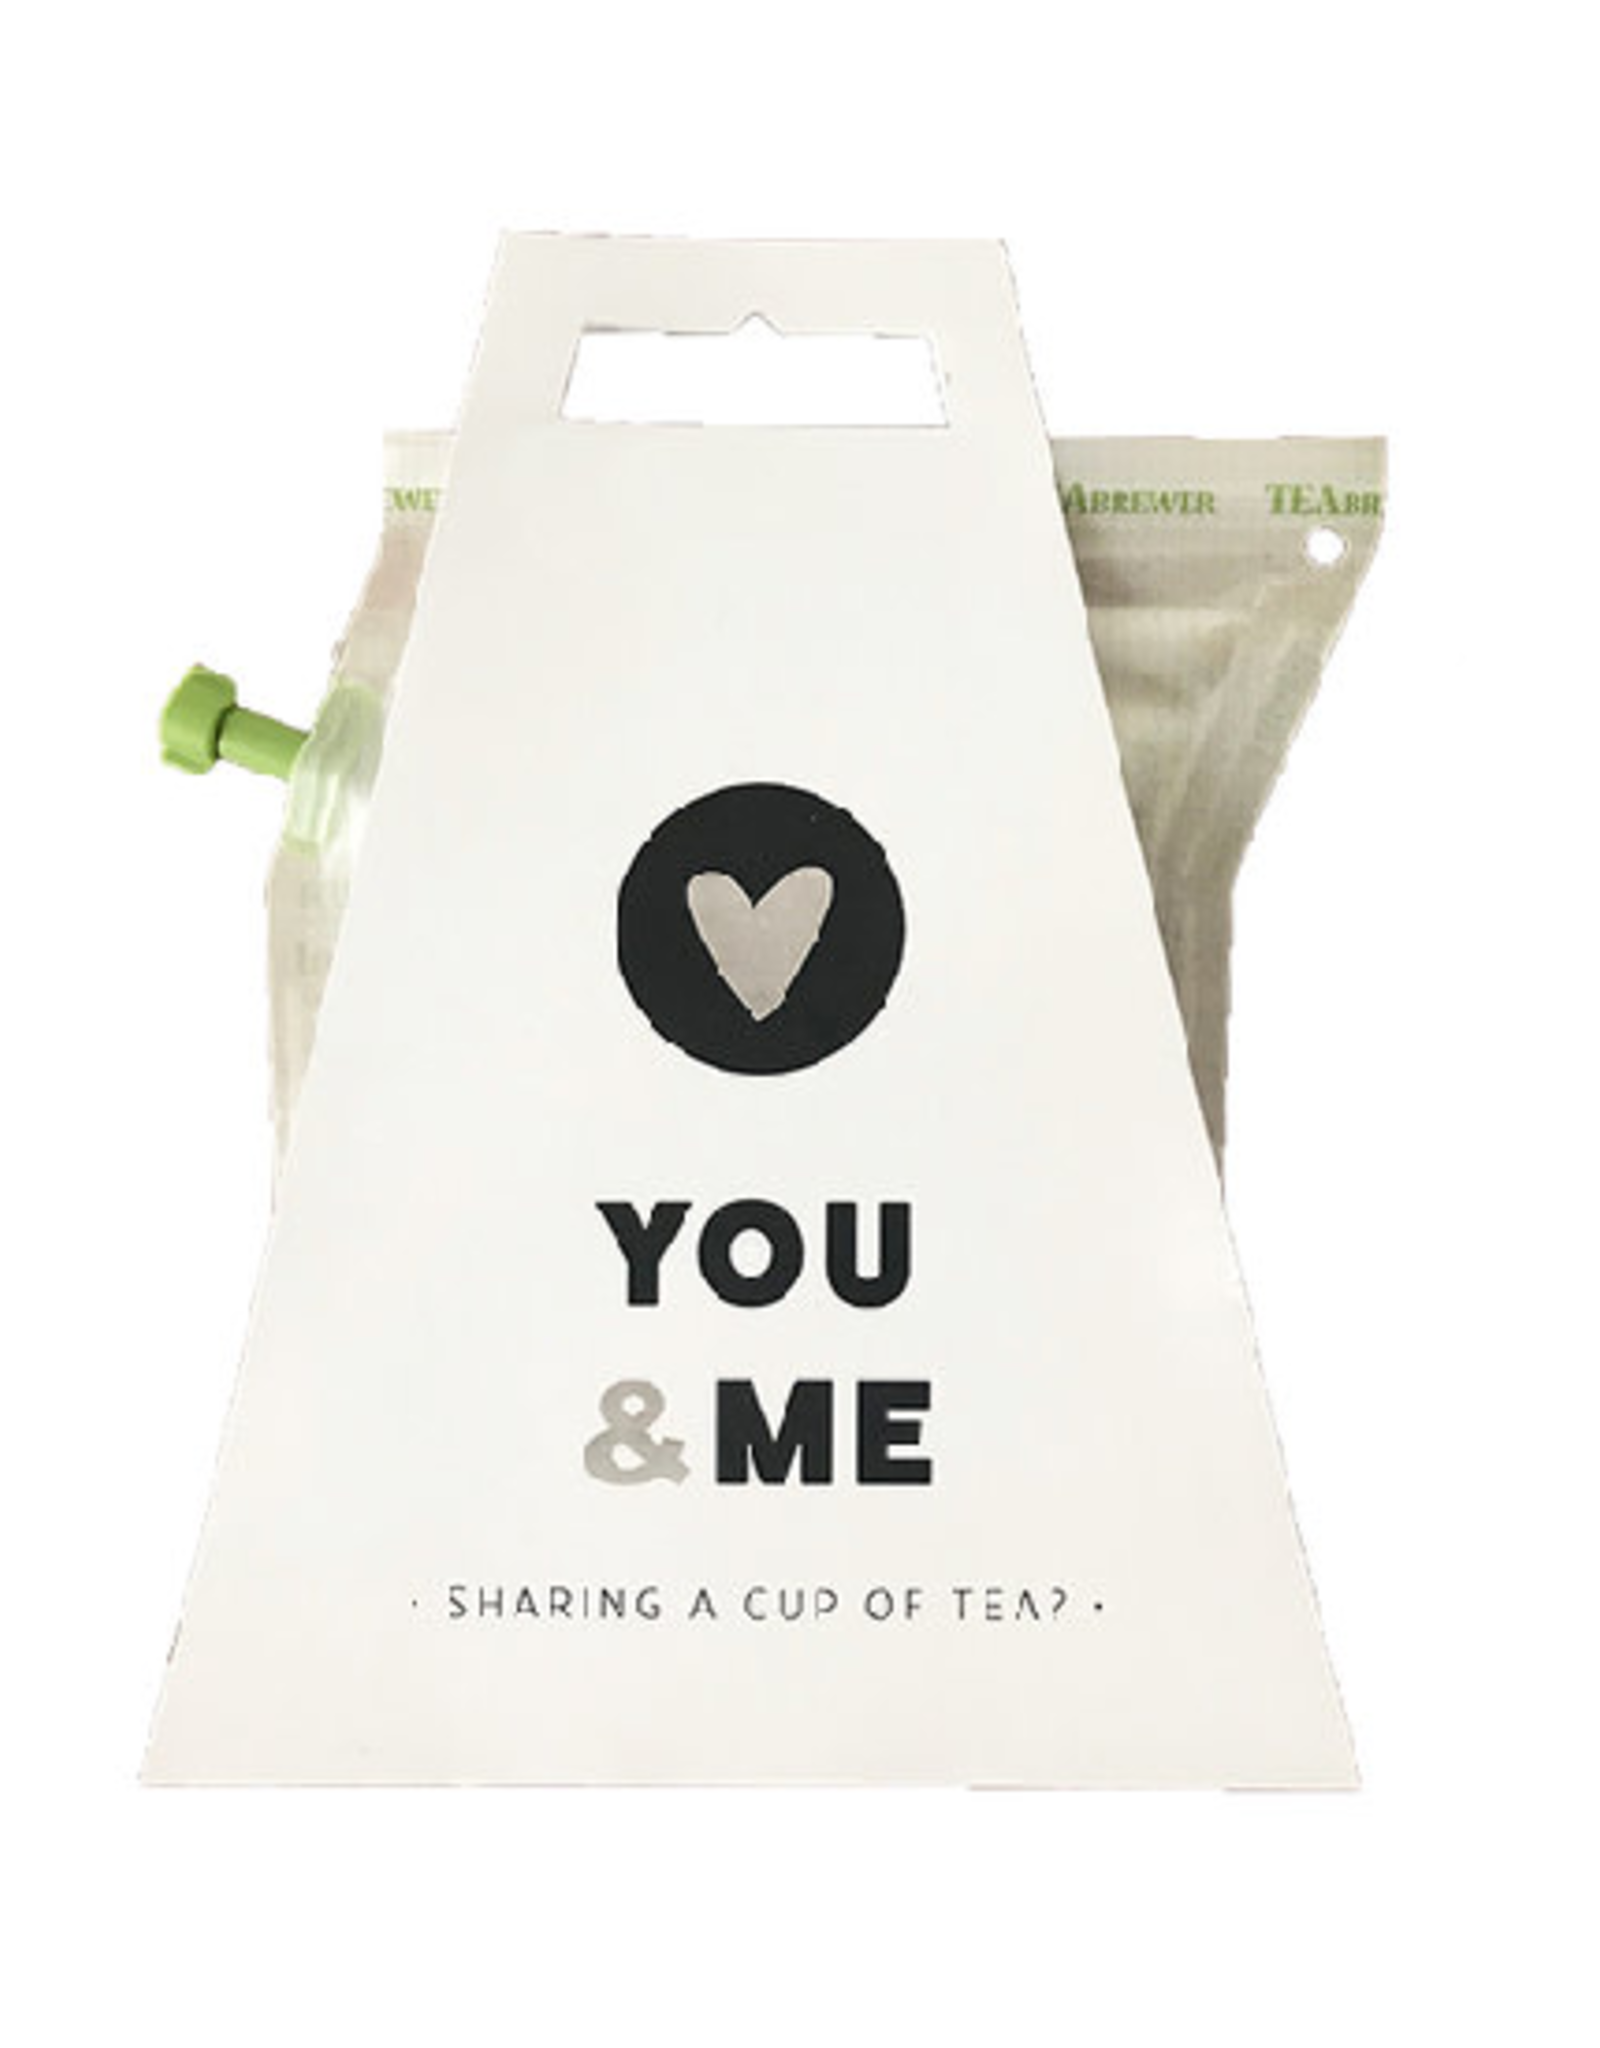 LIV 'N TASTE You & Me. Sharing a Cup of Tea? - TeaBrewer Gift